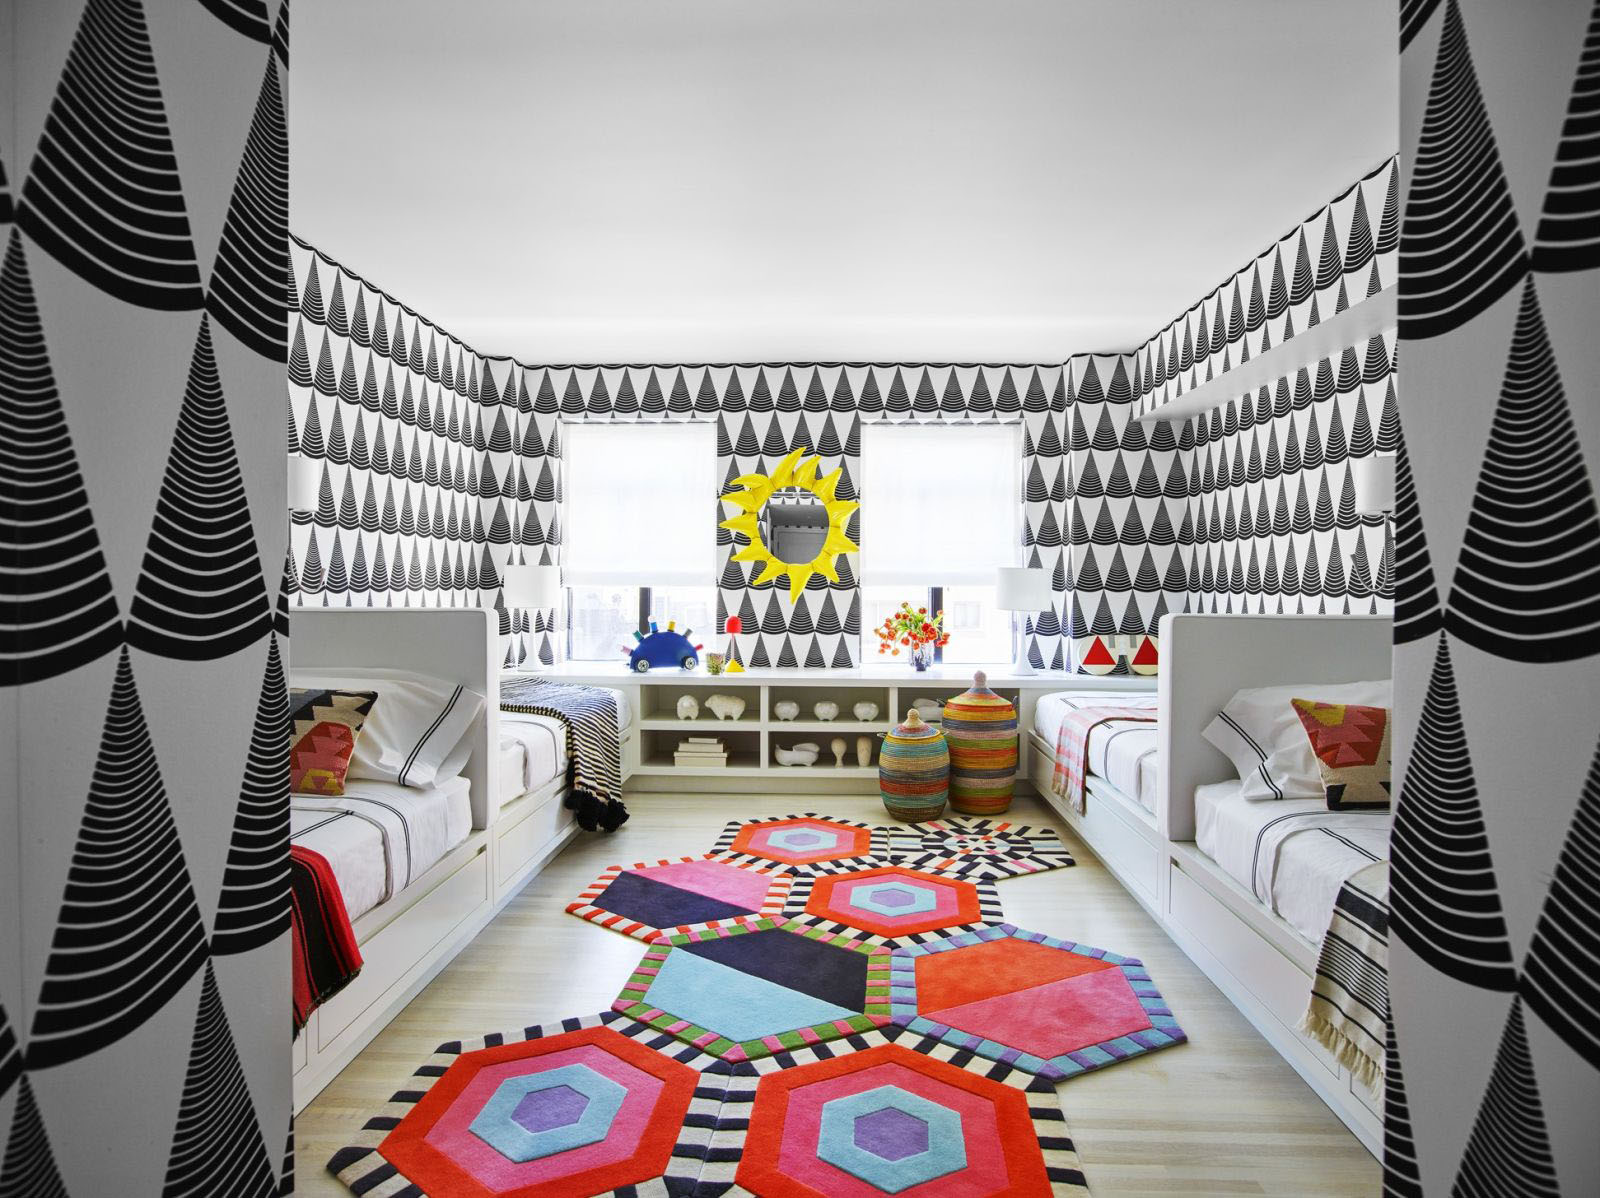 Children's Room Decor with Bold Colors